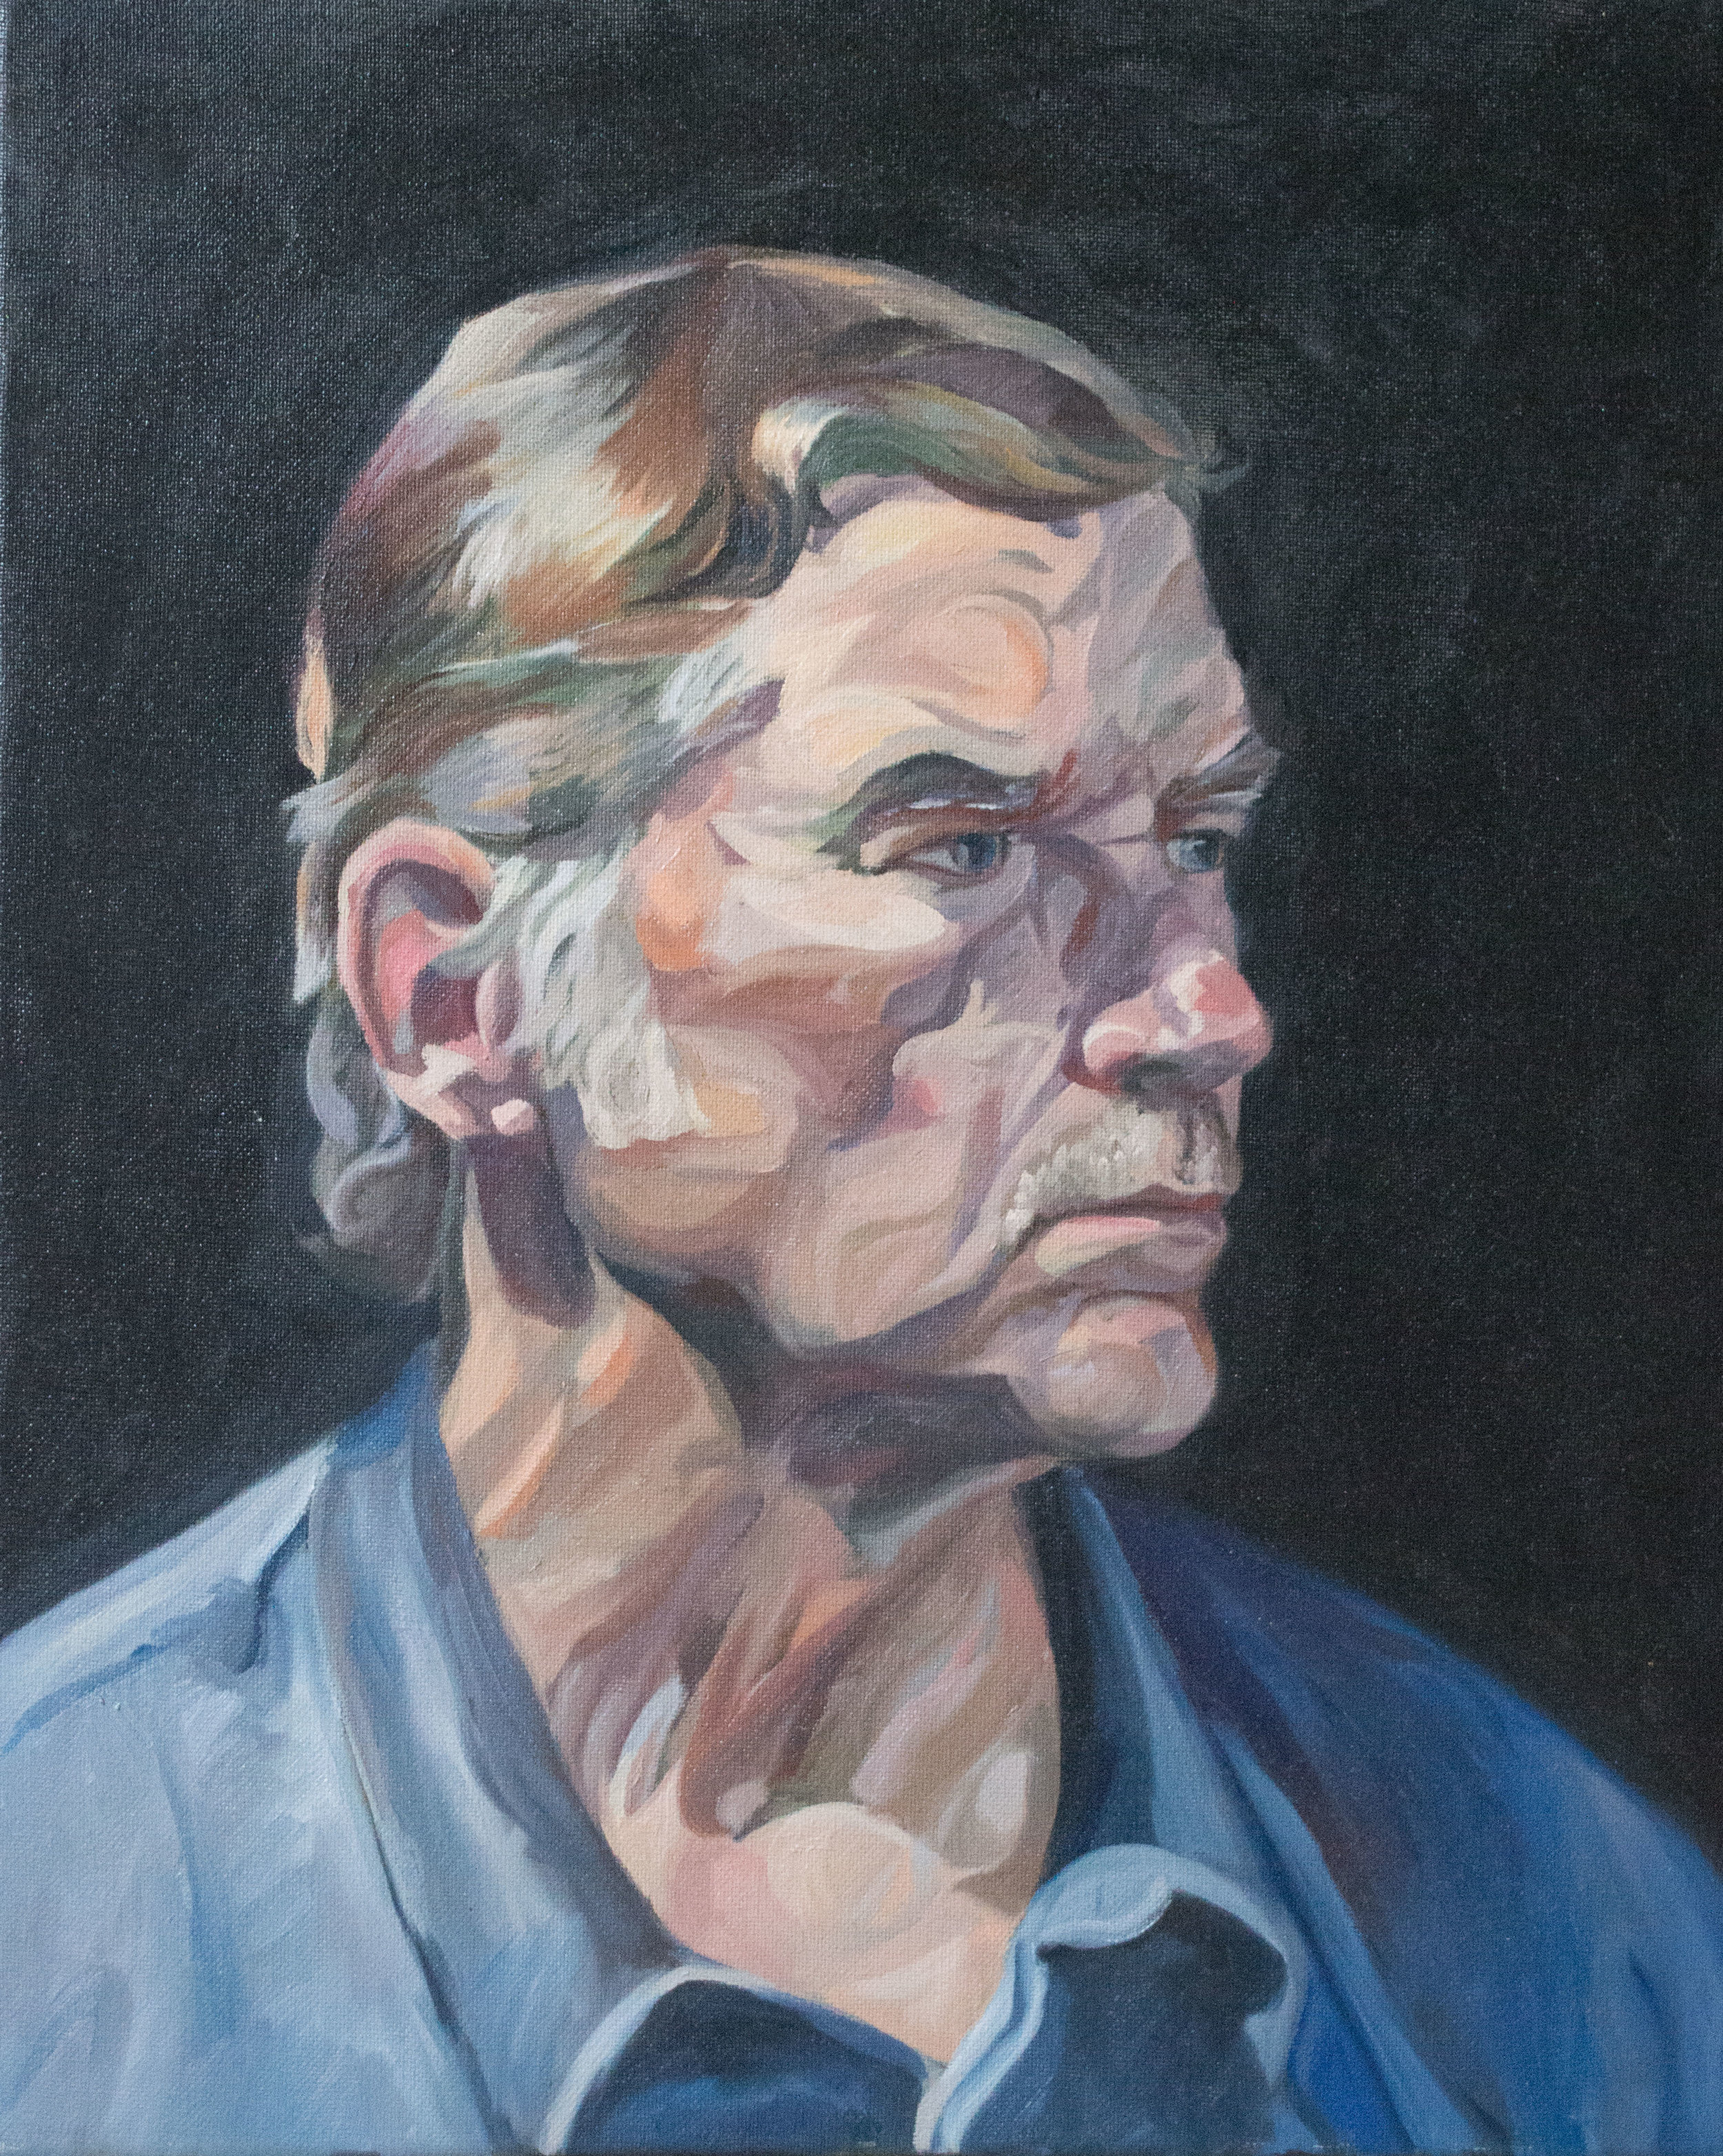 """""""Steve, an exploration""""  Oil on canvas, 16""""x20"""".  Awarded first place in juried show"""